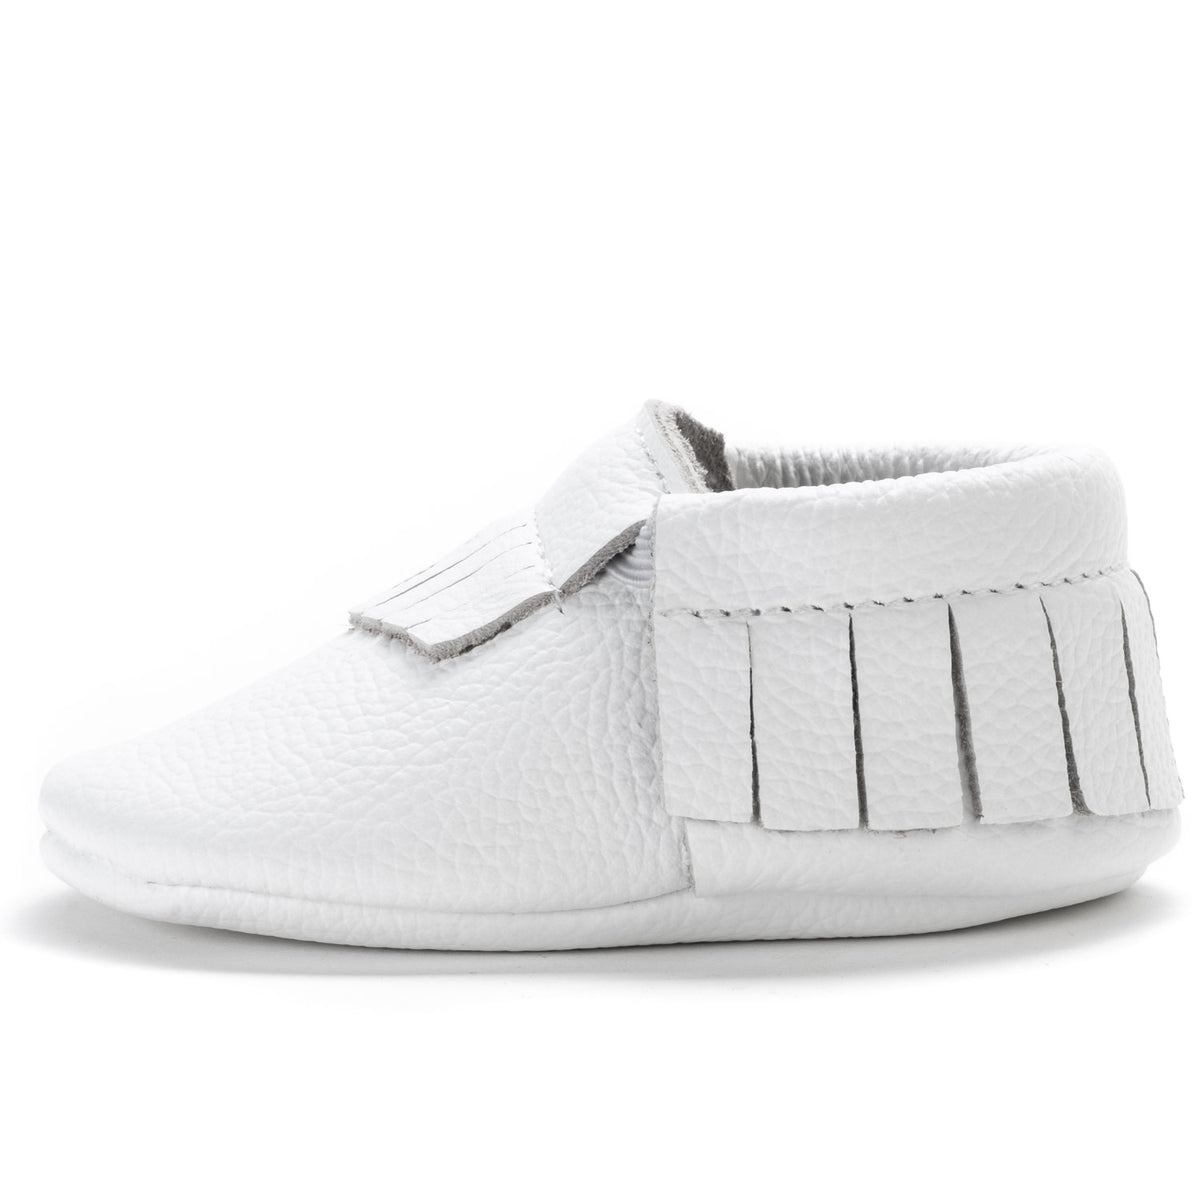 Pearl White Baby Moccasins